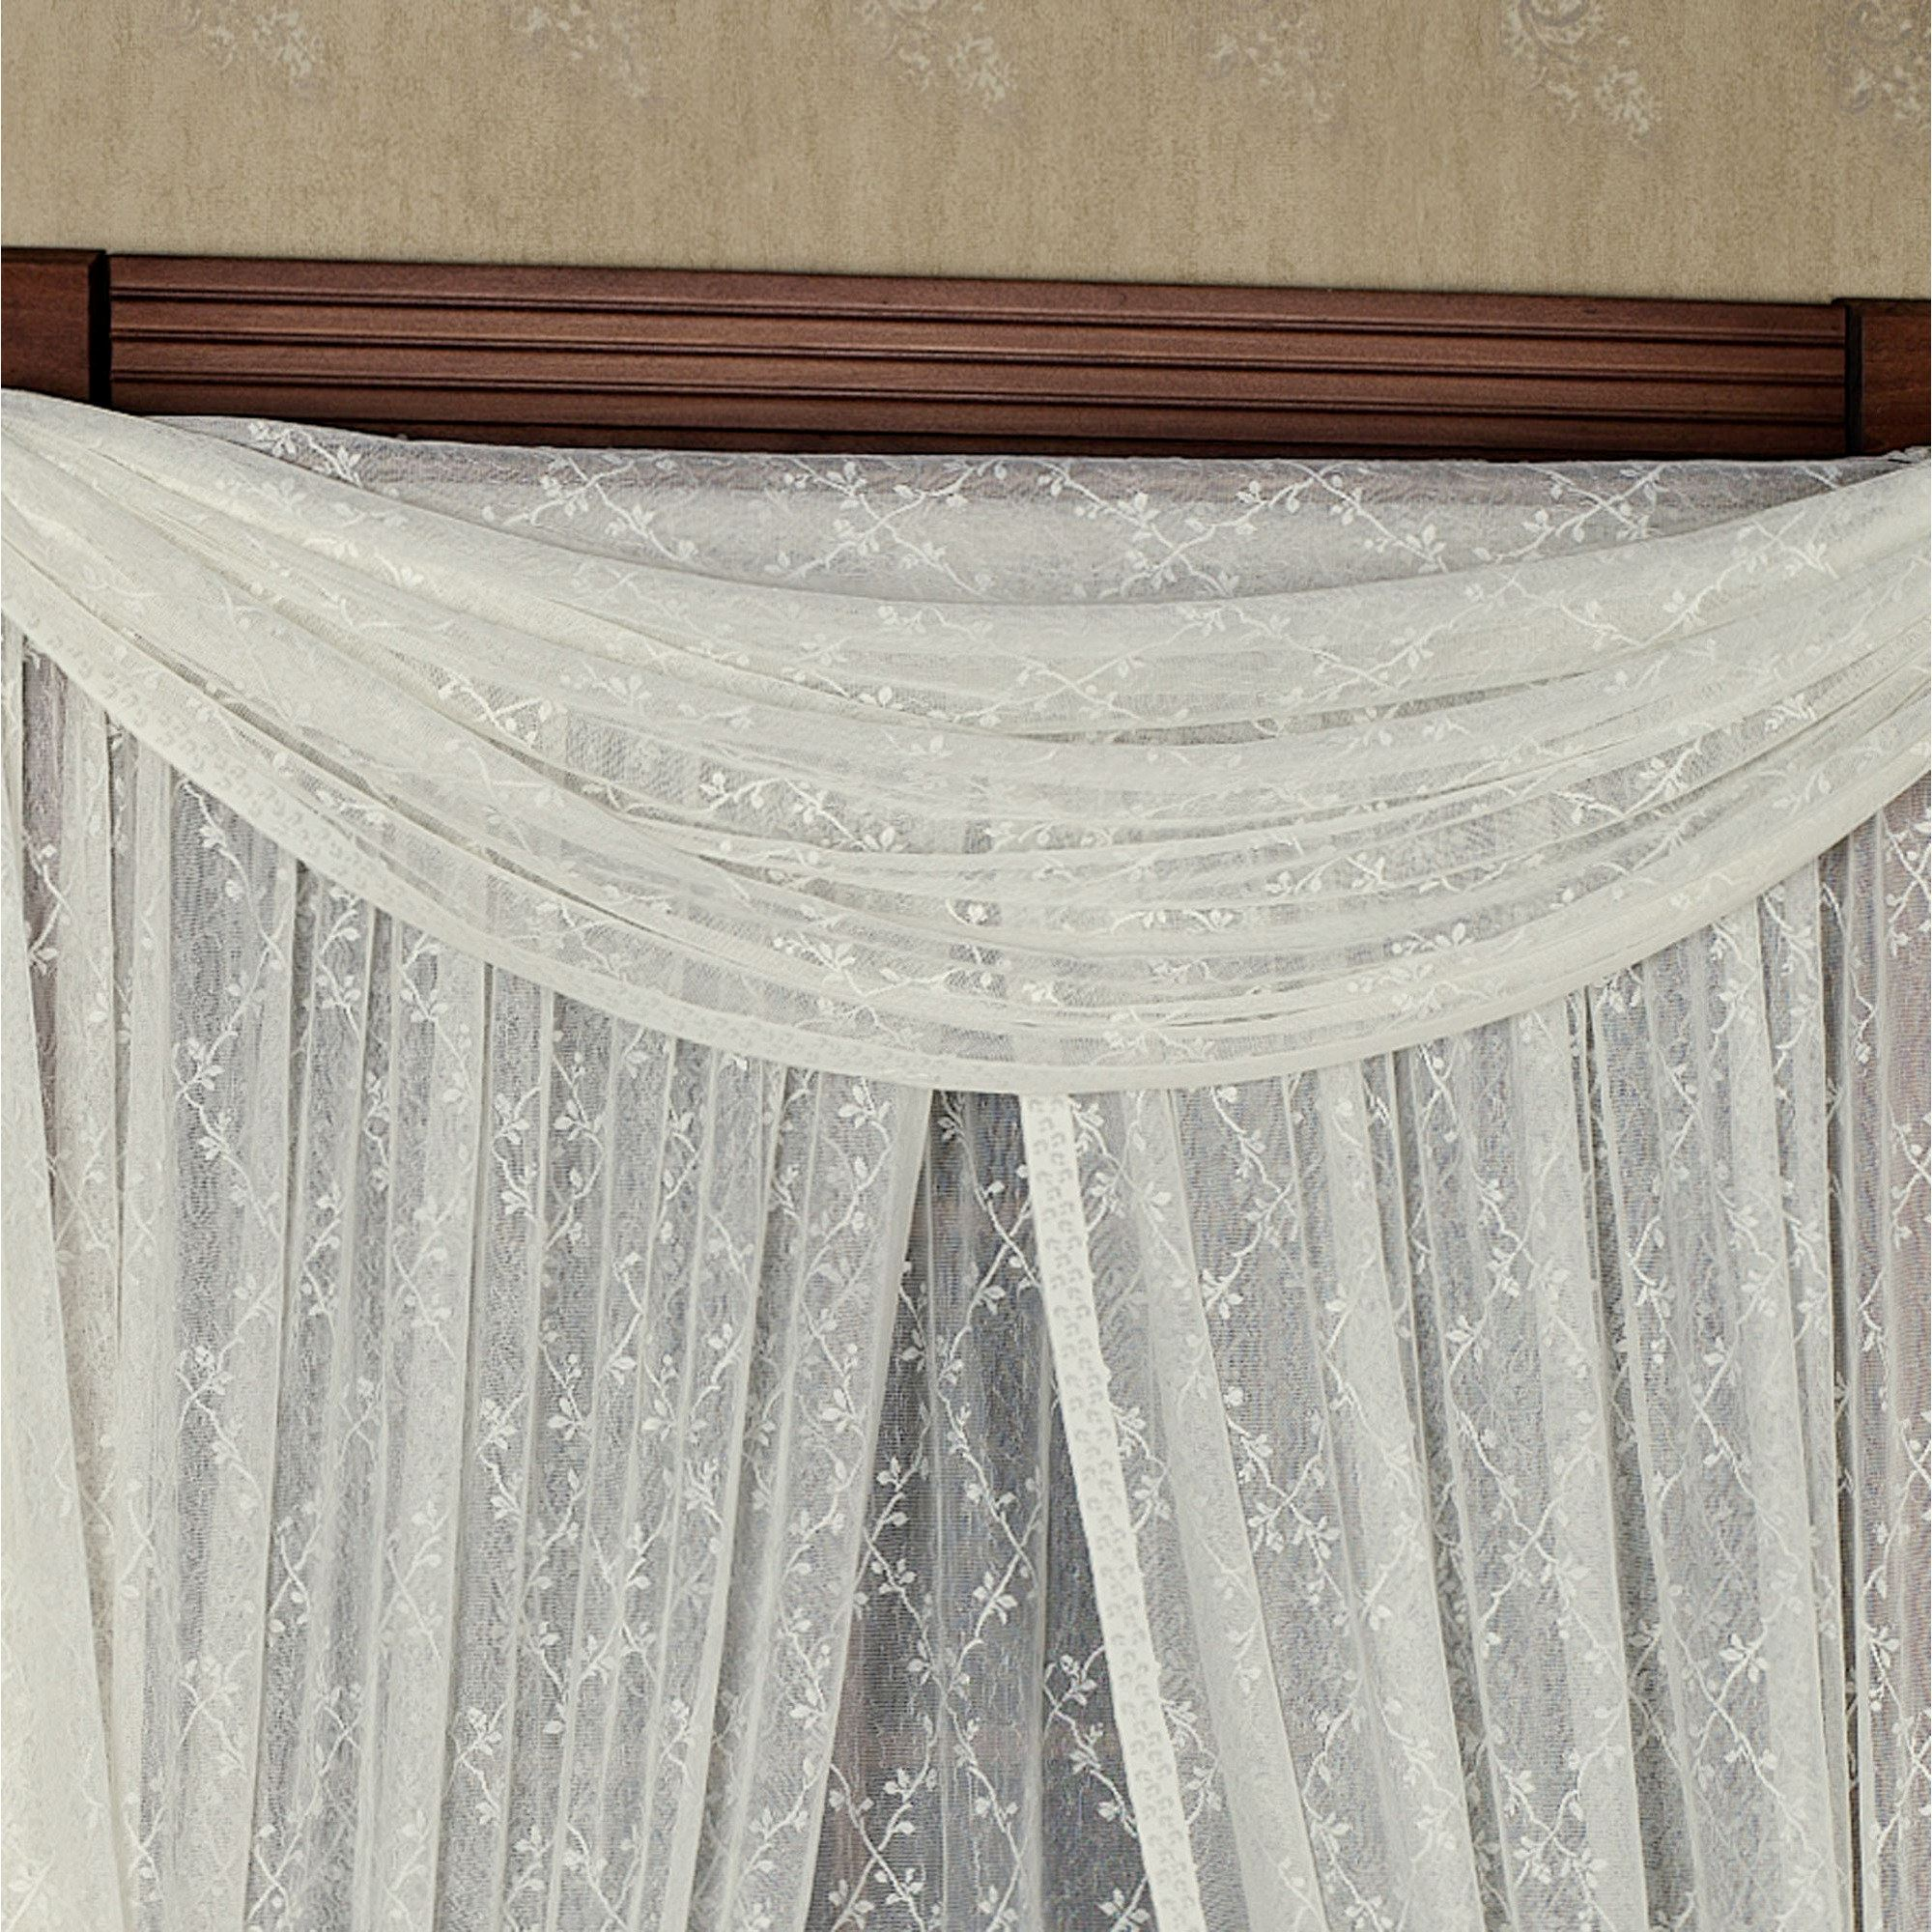 scarf valance erieairfair window valances galery with treatment scarves treatments ideas and